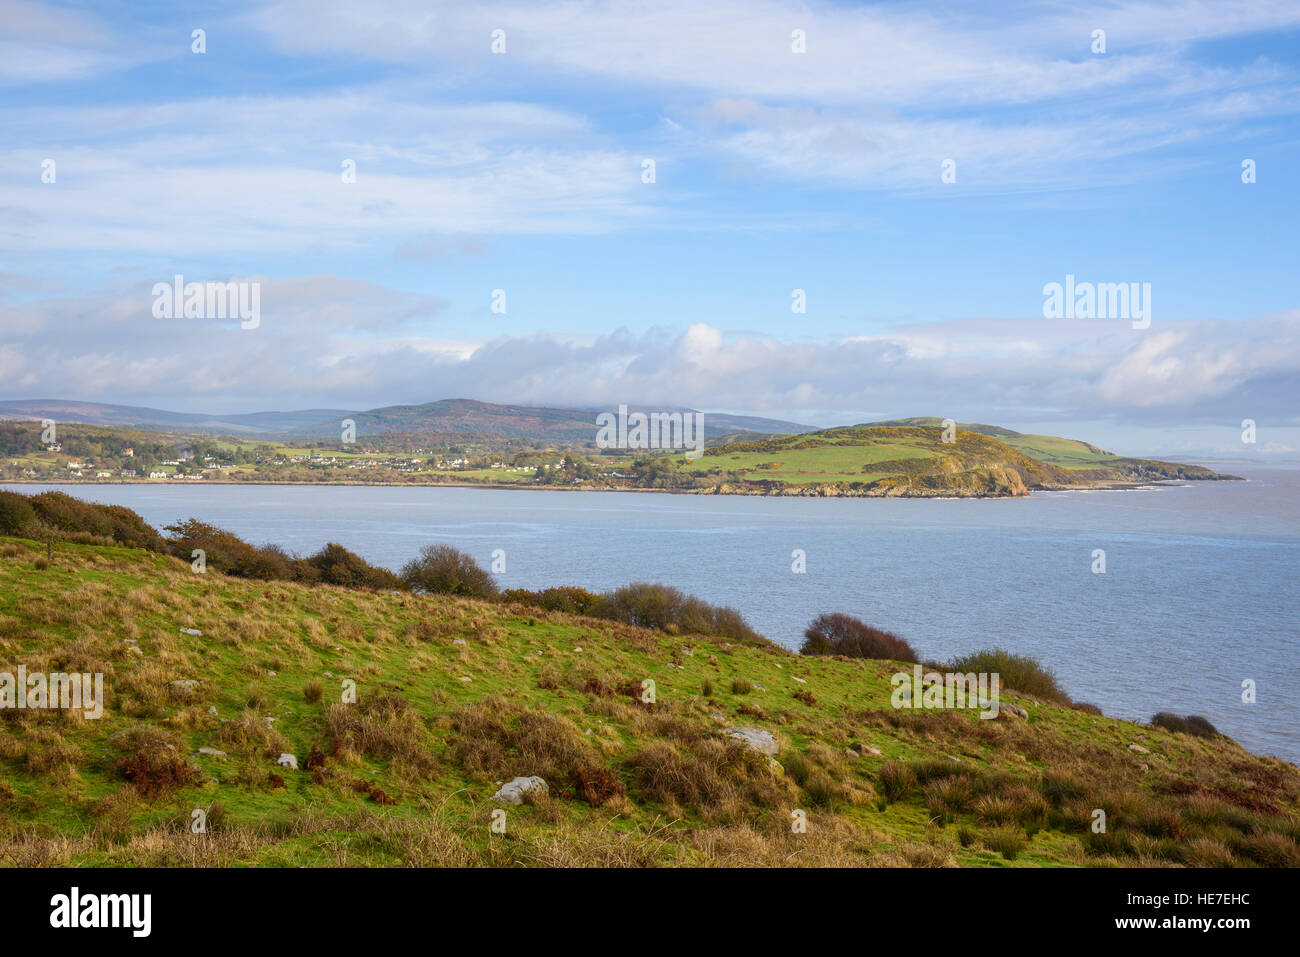 Rough Firth from Almorness Point, Solway Firth, Dumfries & Galloway, Scotland - Stock Image